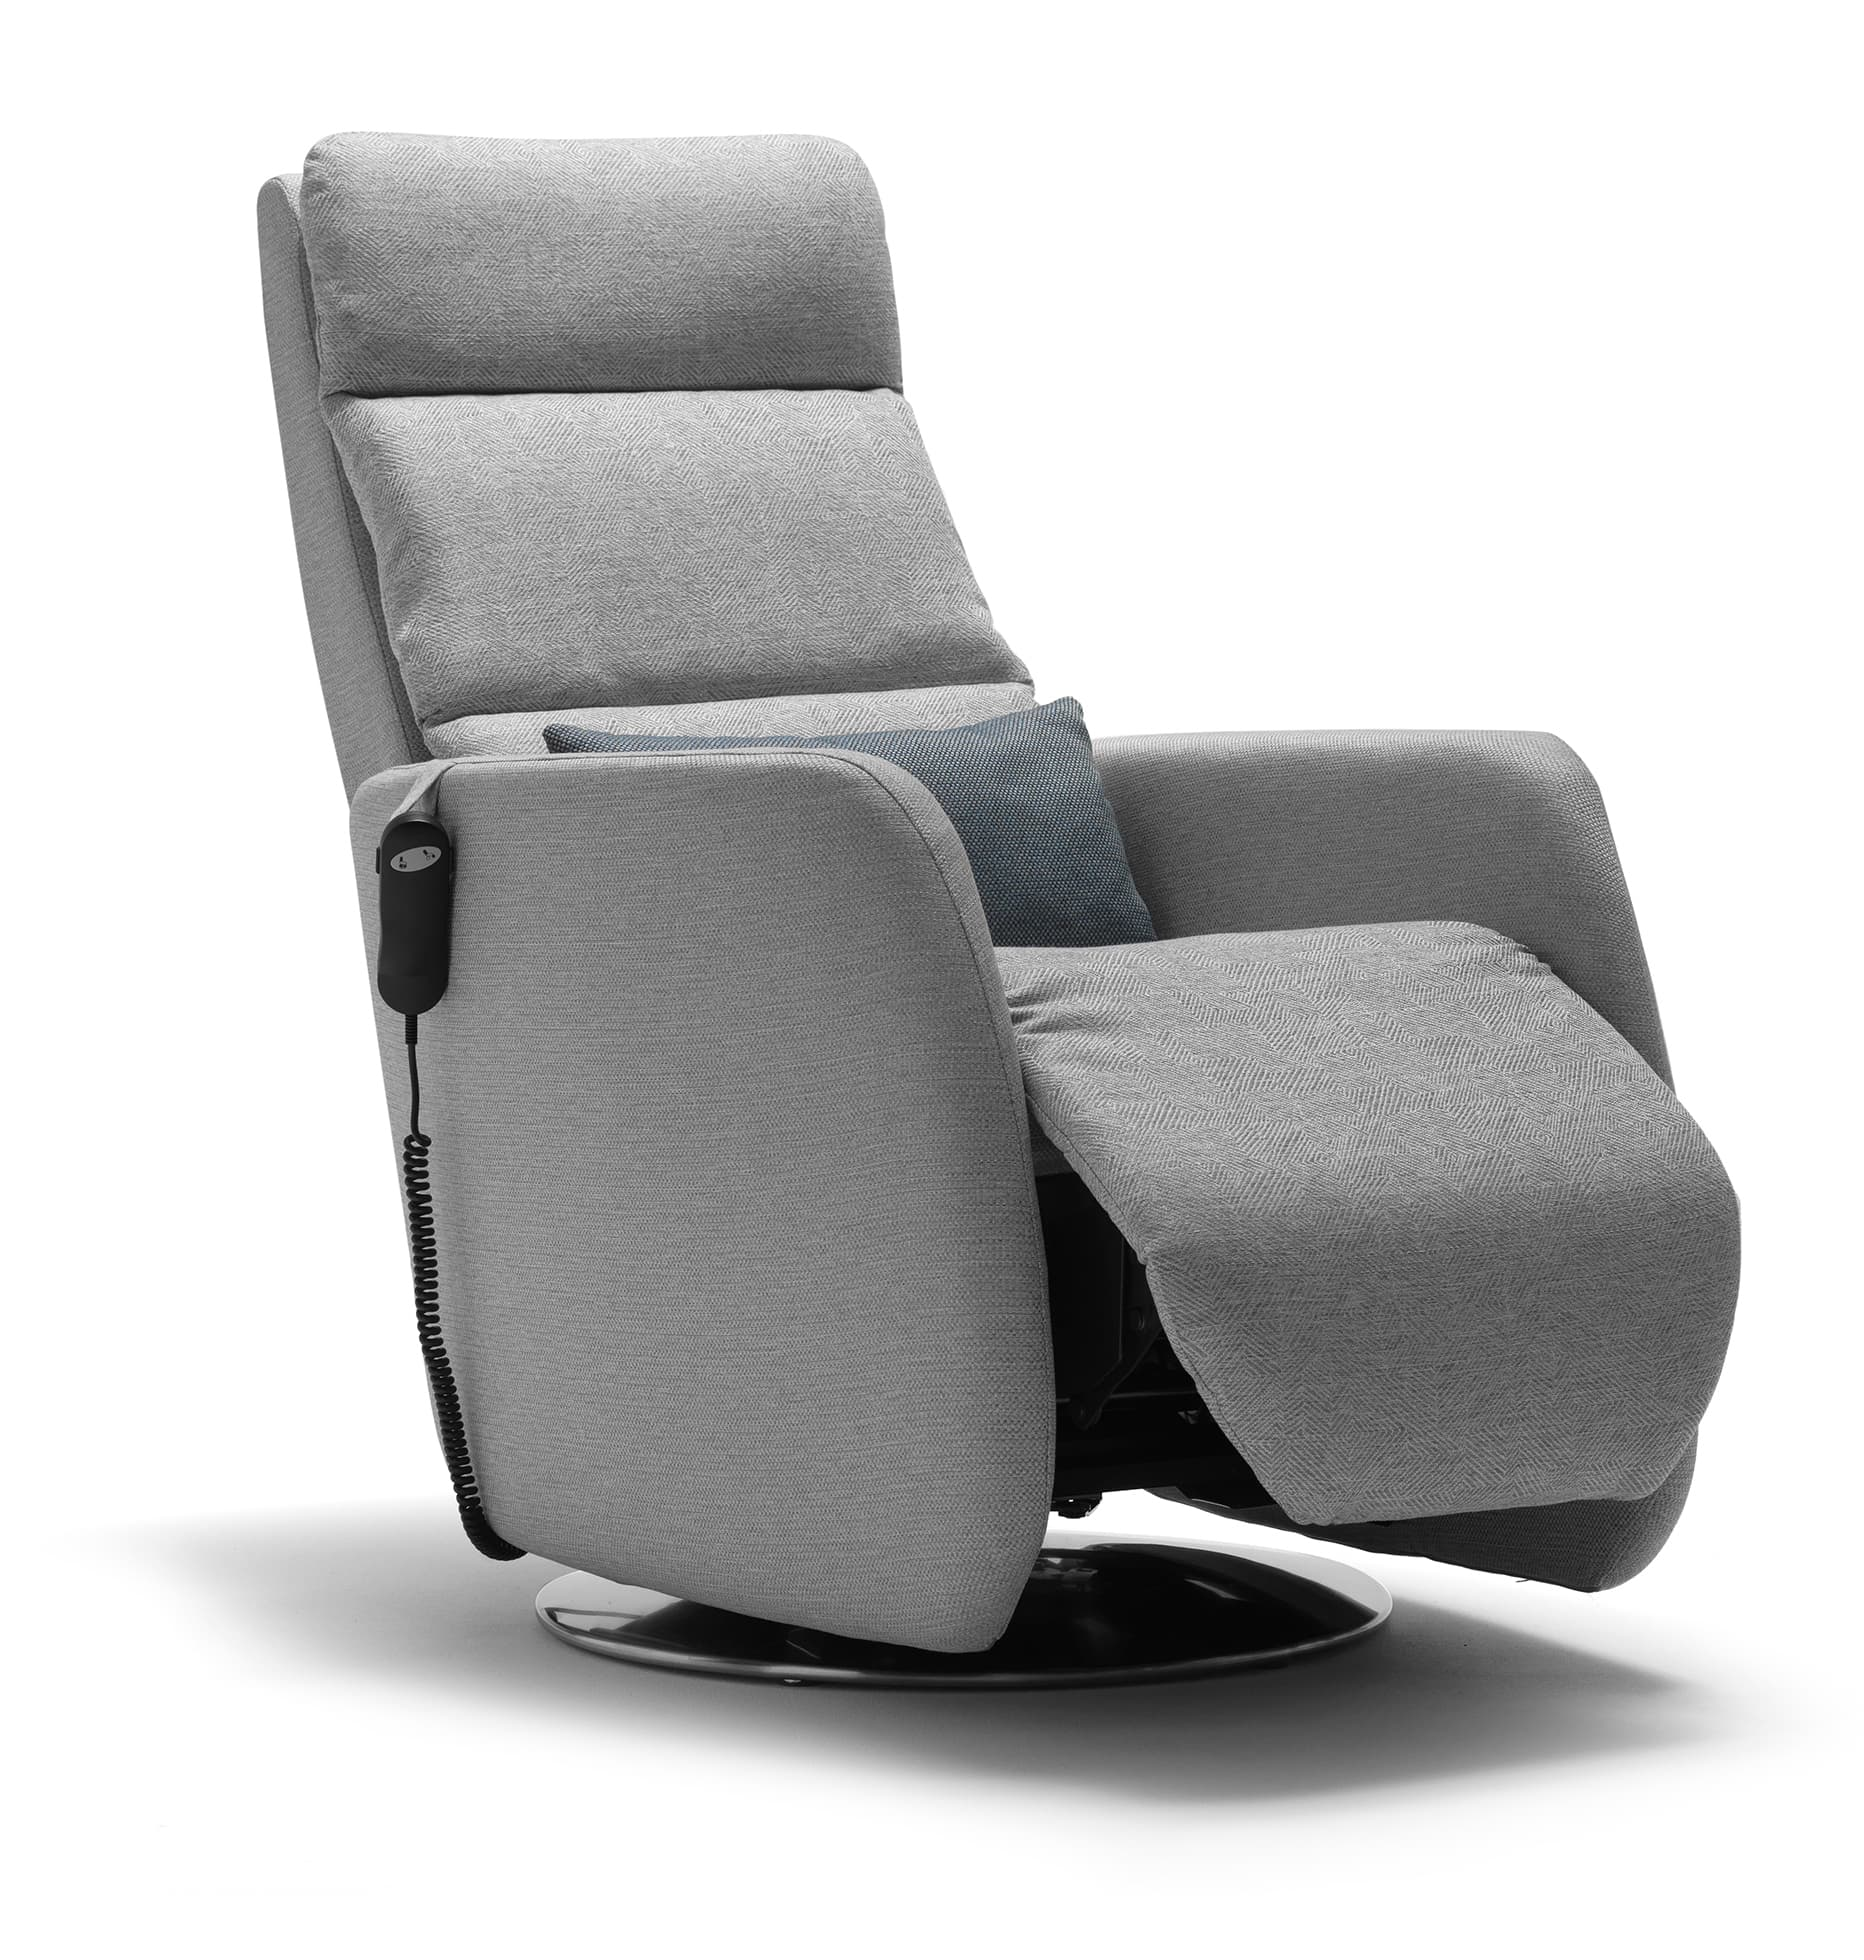 Brinklow Swivel Rise And Recline Chair Change Mobility